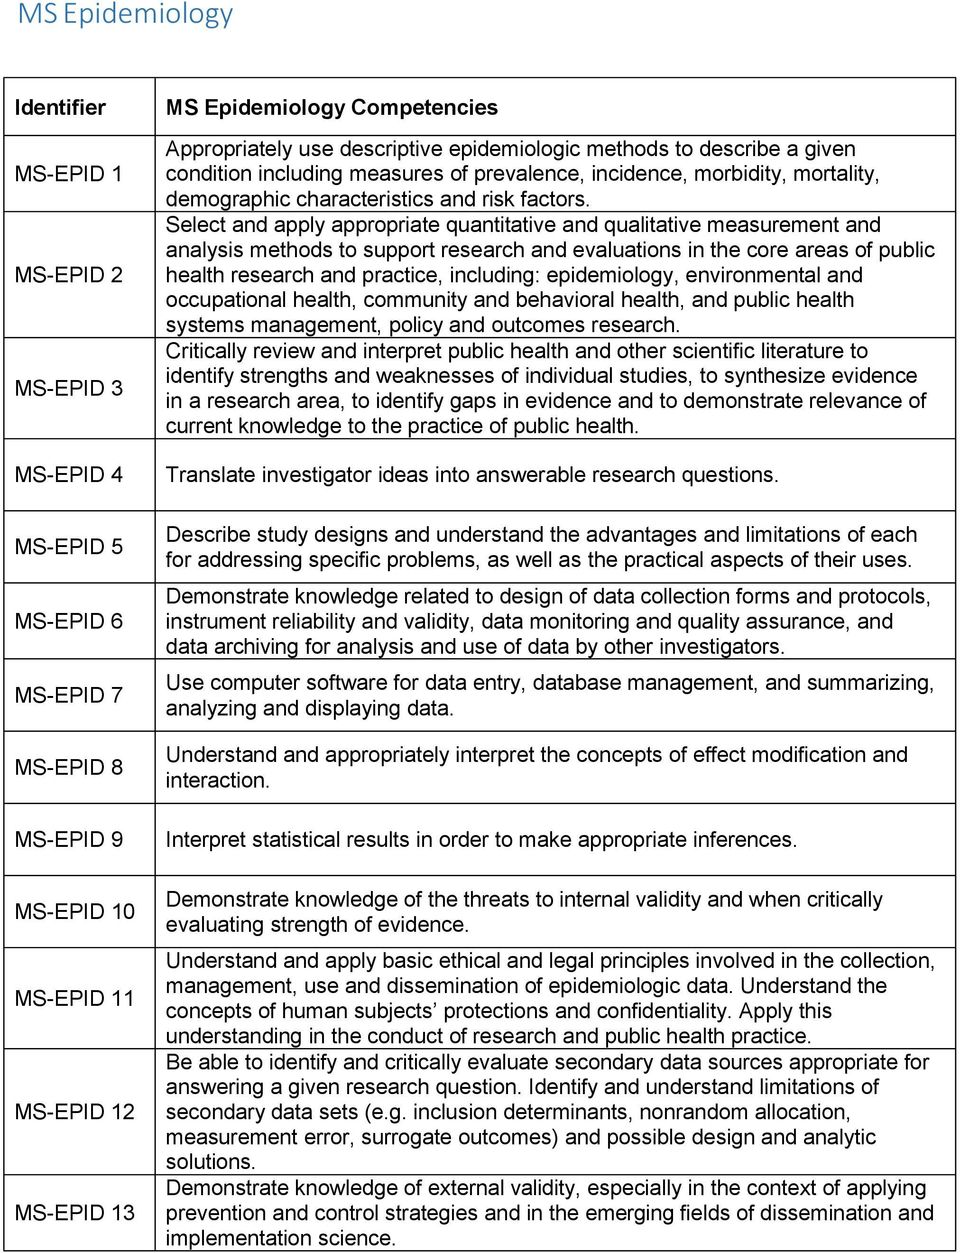 Select and apply appropriate quantitative and qualitative measurement and analysis methods to support research and evaluations in the core areas of public health research and practice, including: